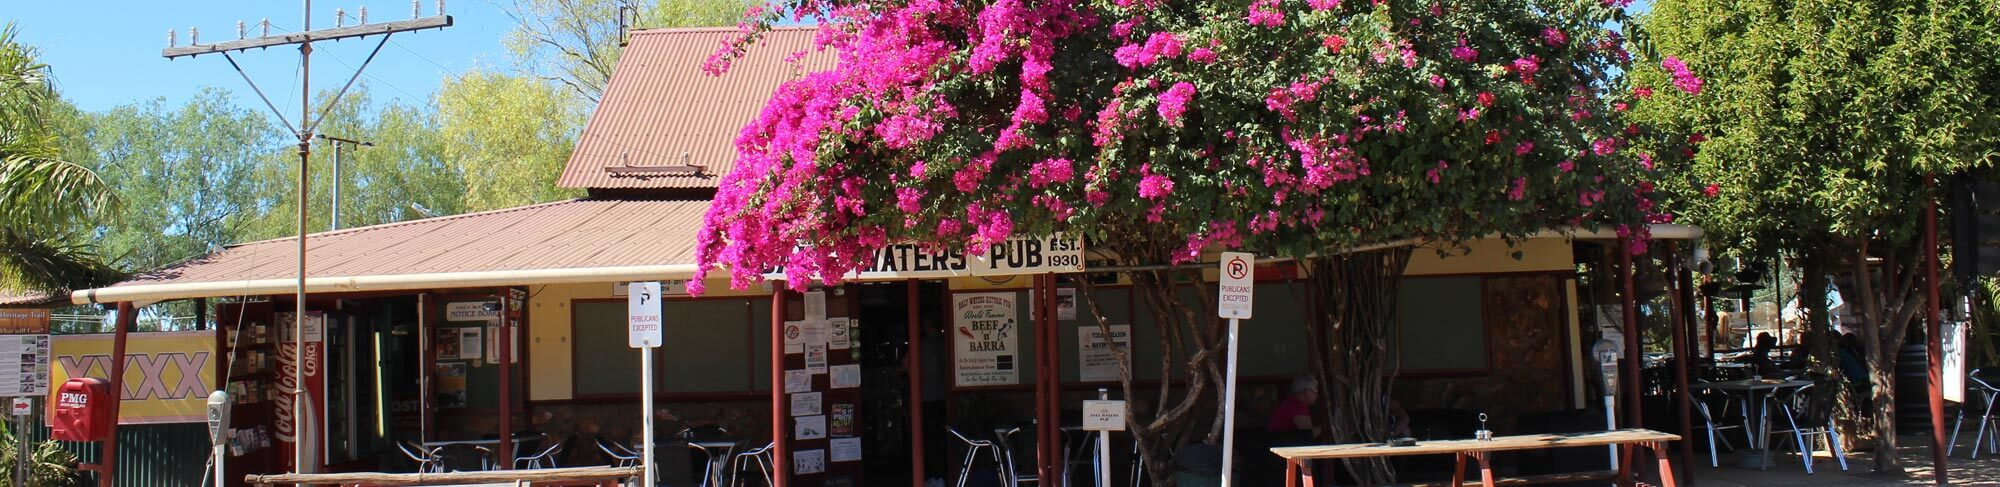 The Daly Water Pub